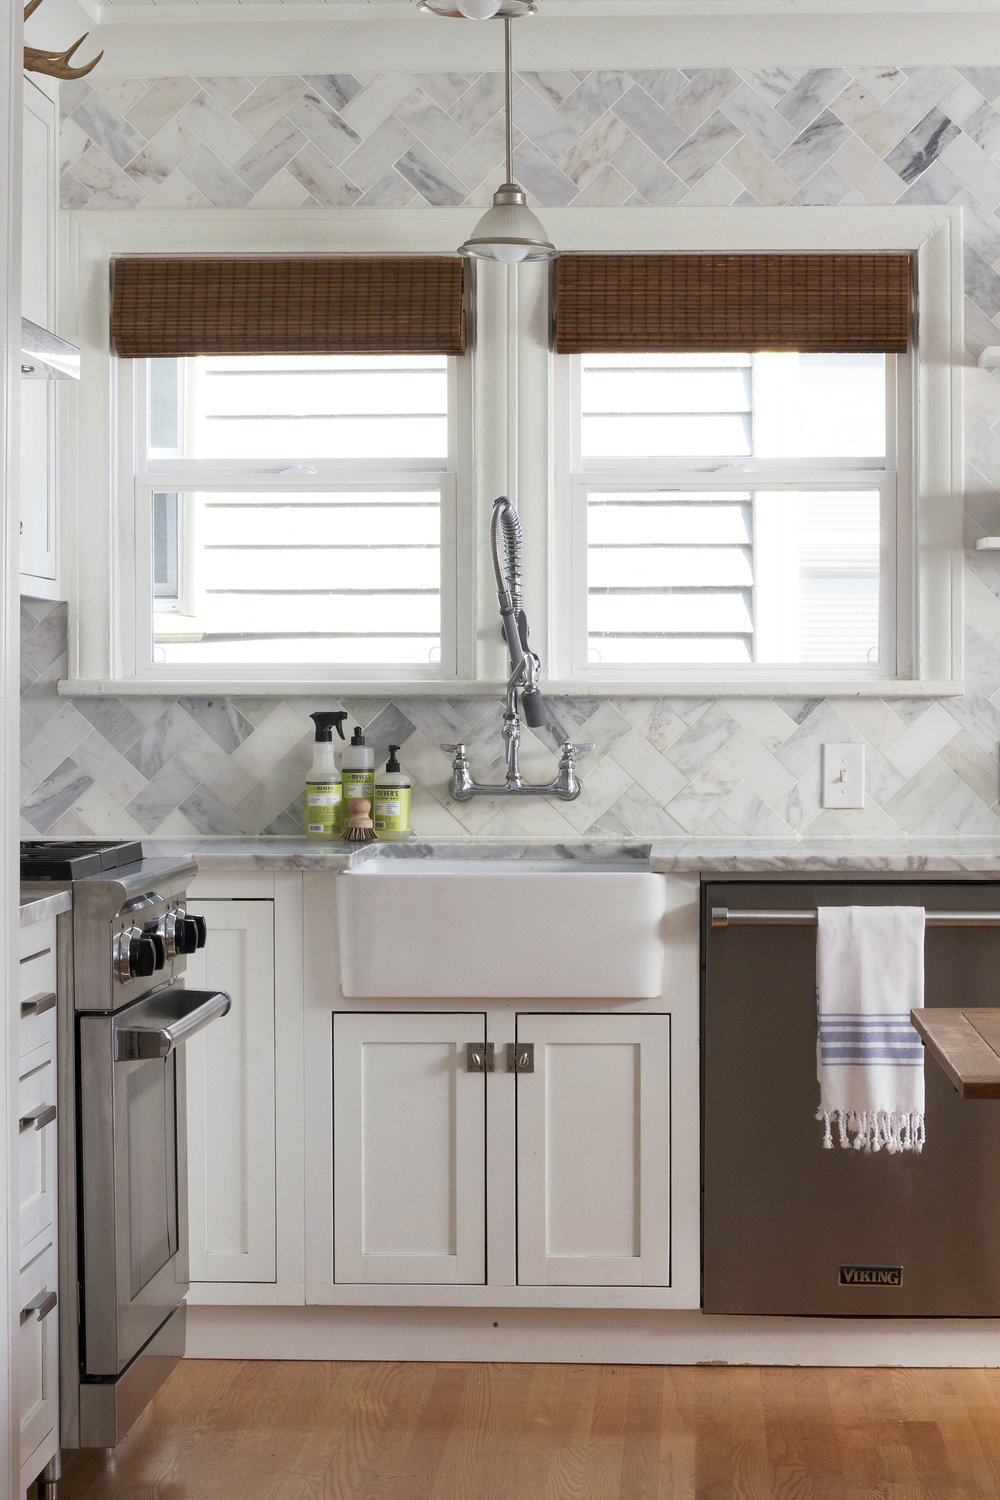 The Grit and Polish - Ravenna 2.0 Wood and Marble Kitchen Sink.jpg